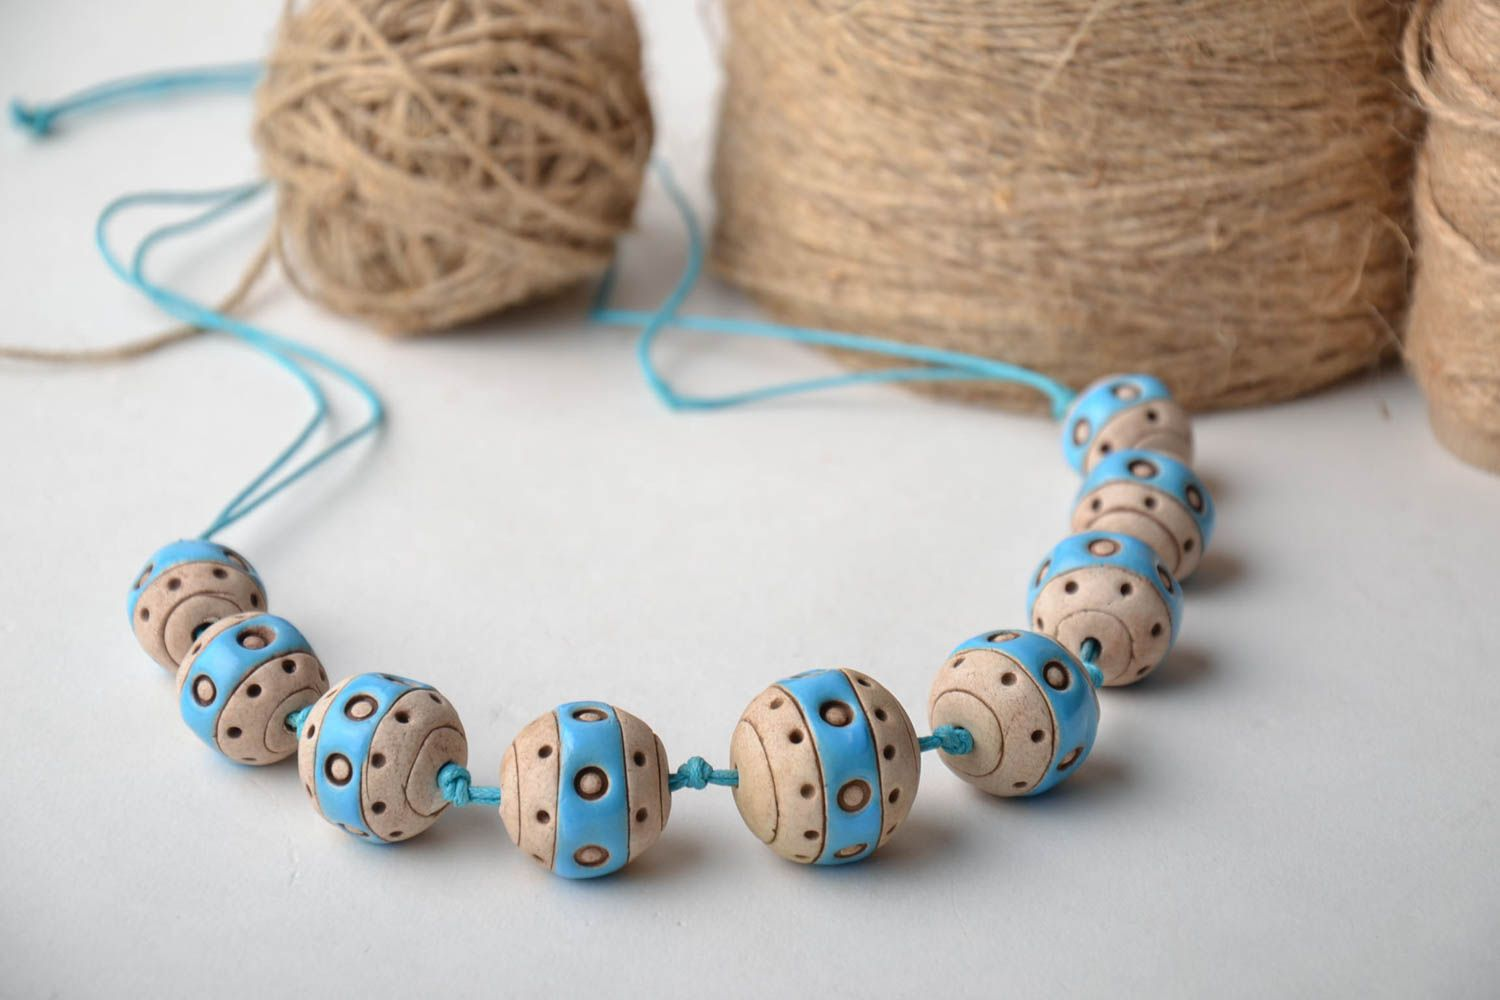 Clay bead necklace with cord photo 1